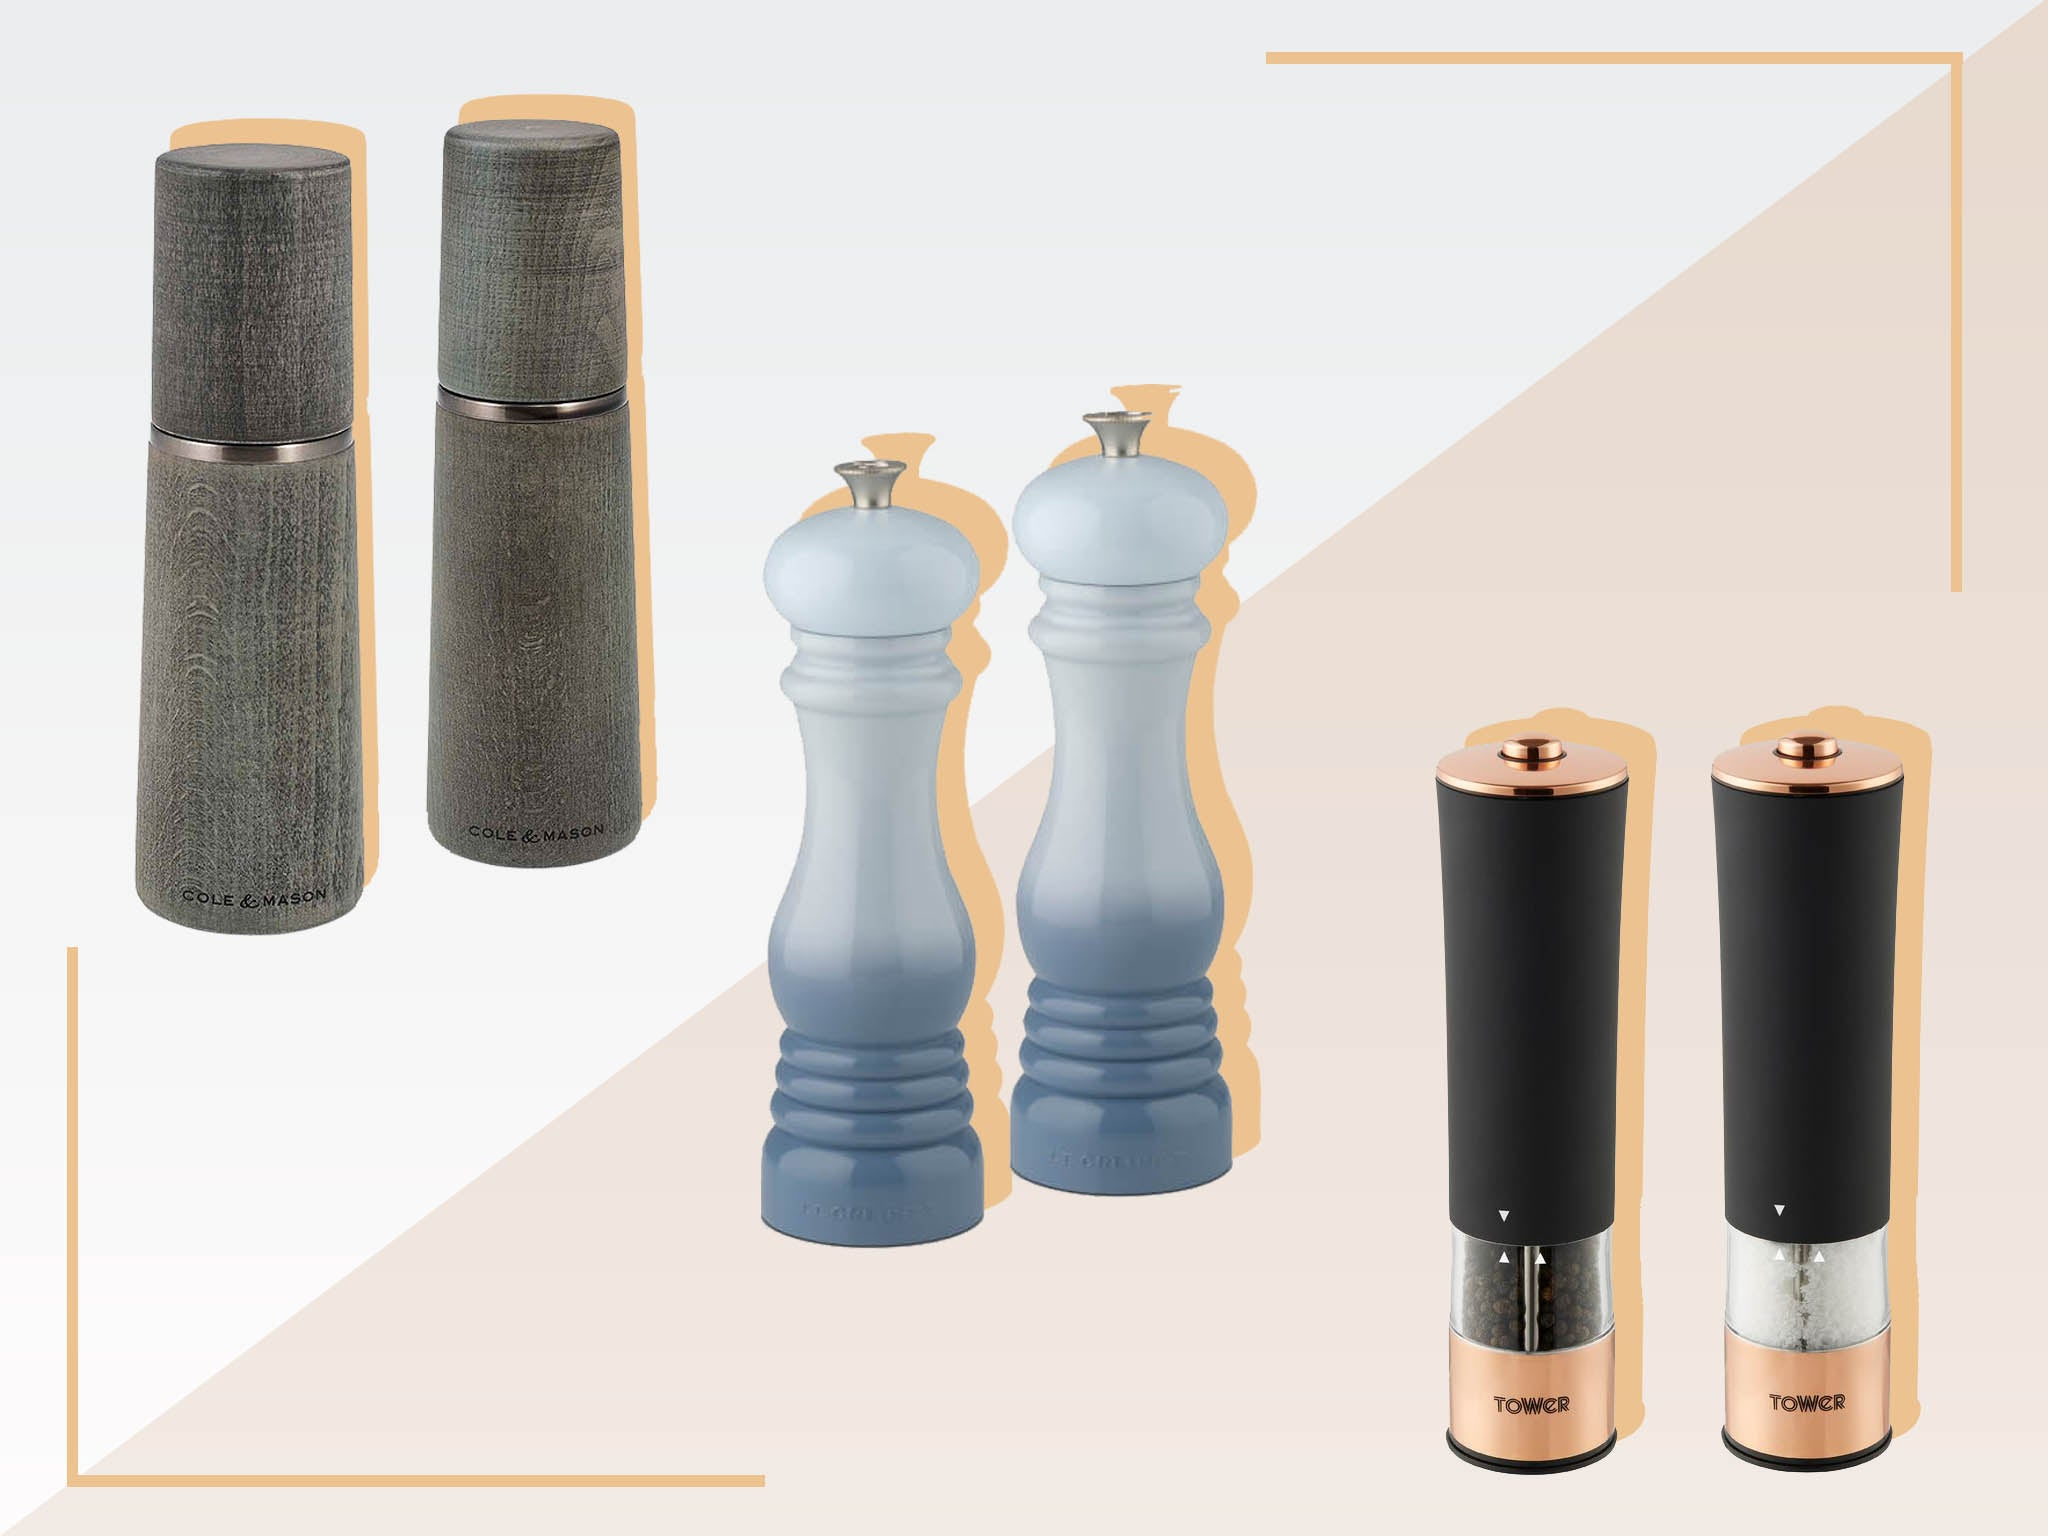 best salt and pepper mills 2020: wooden, electric and